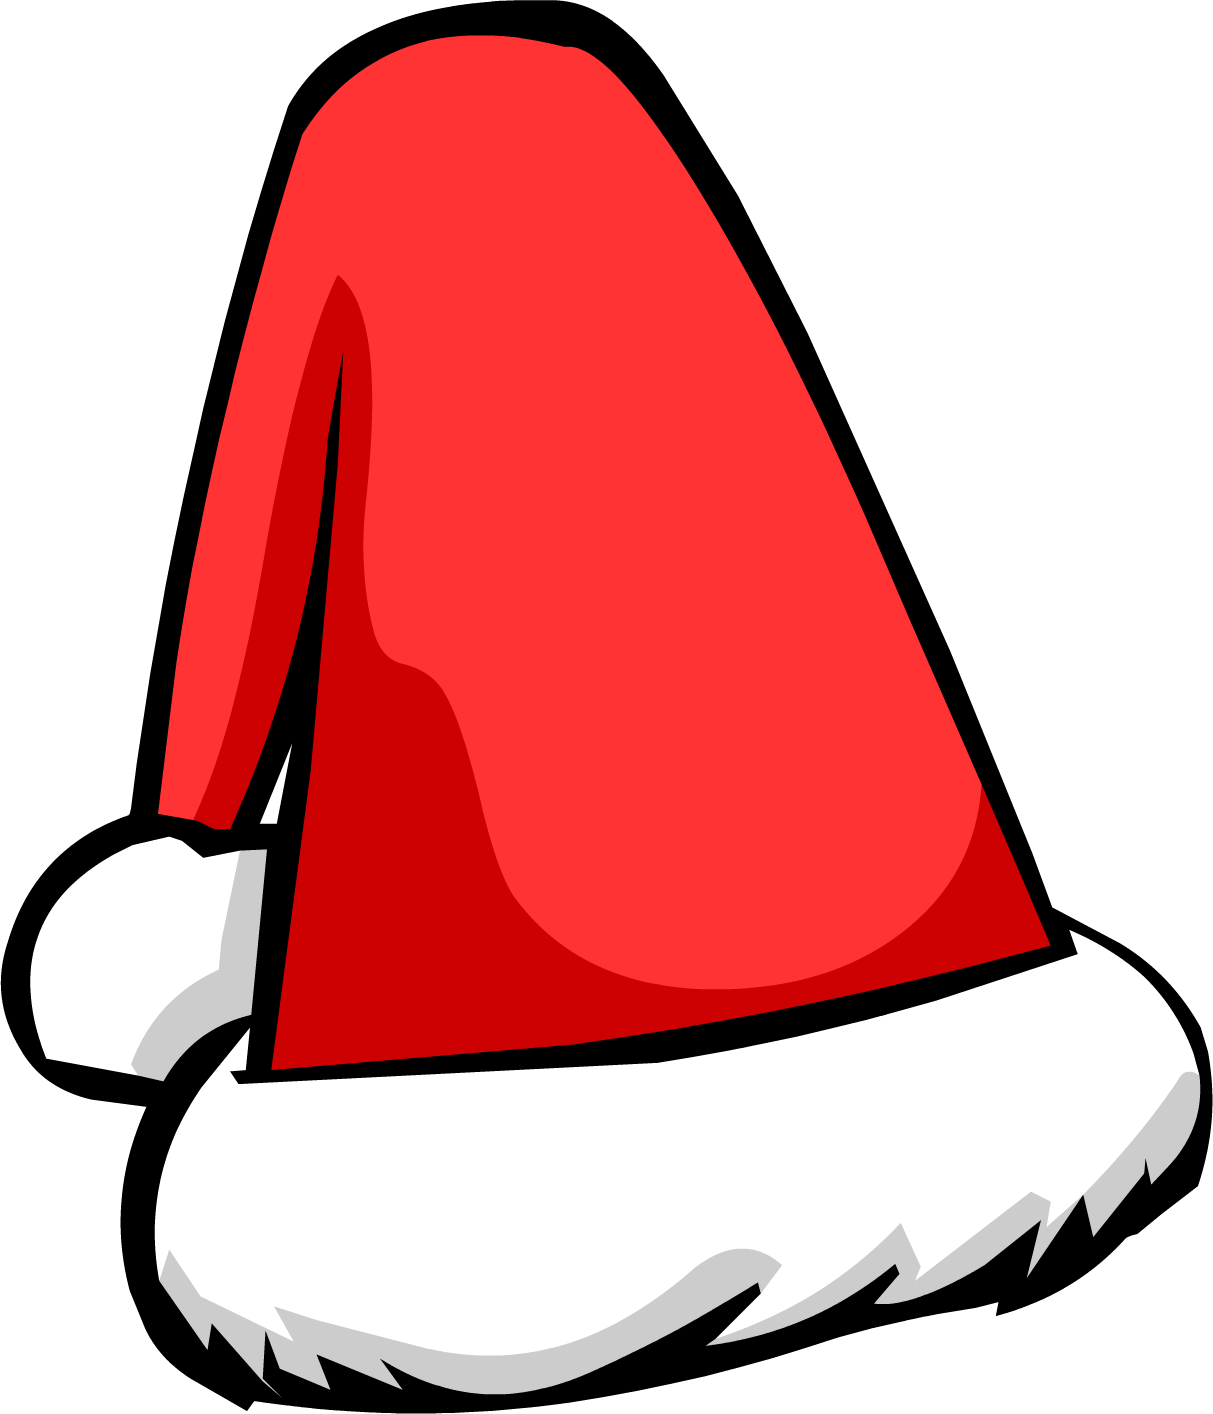 Santa hat vector png. Clipart outline pencil and